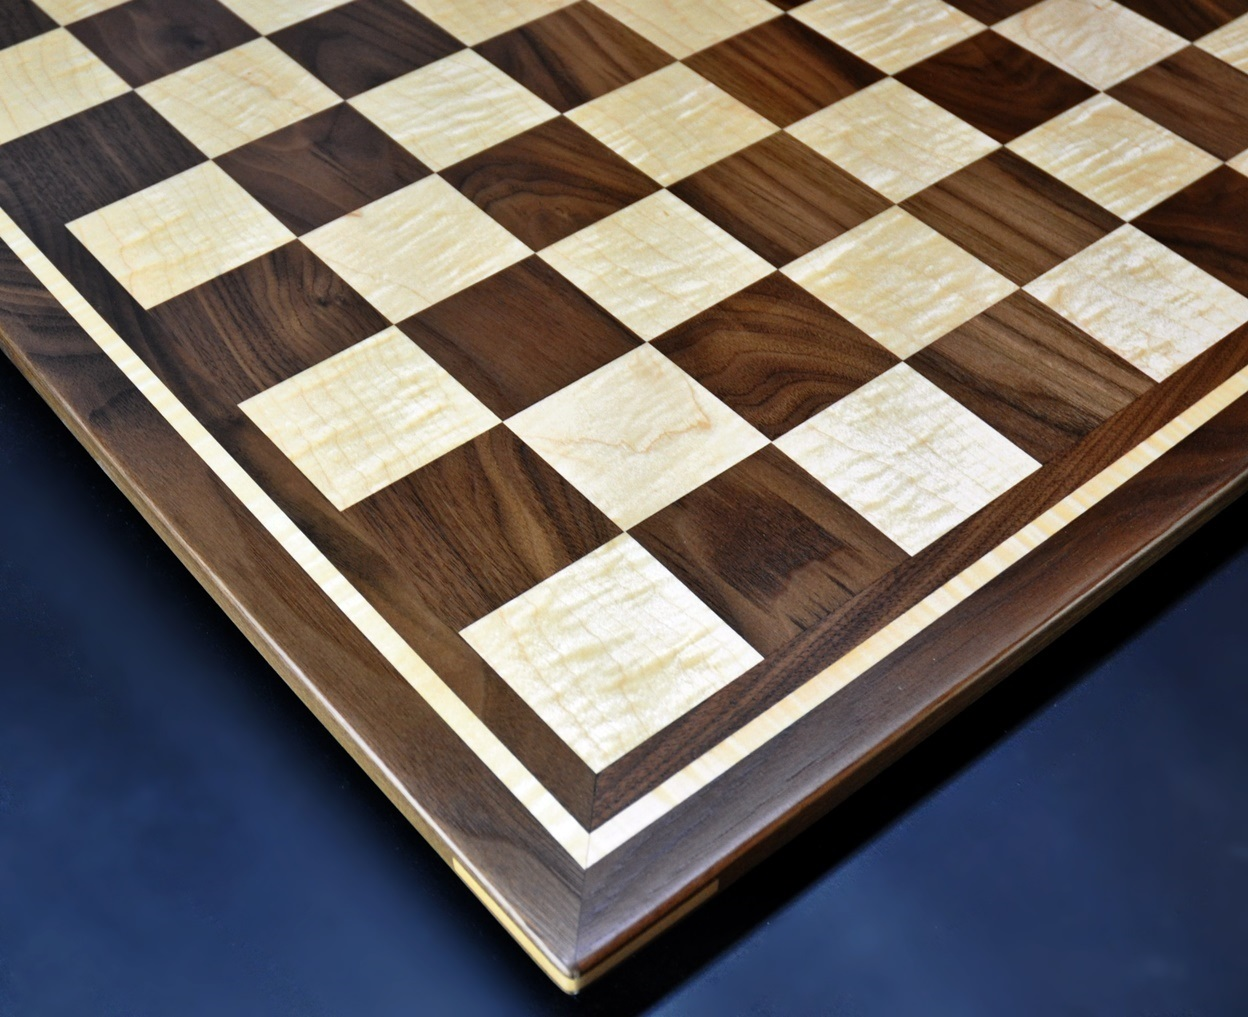 Curly maple and Walnut Chess board by Sweet Hill Wood image 2